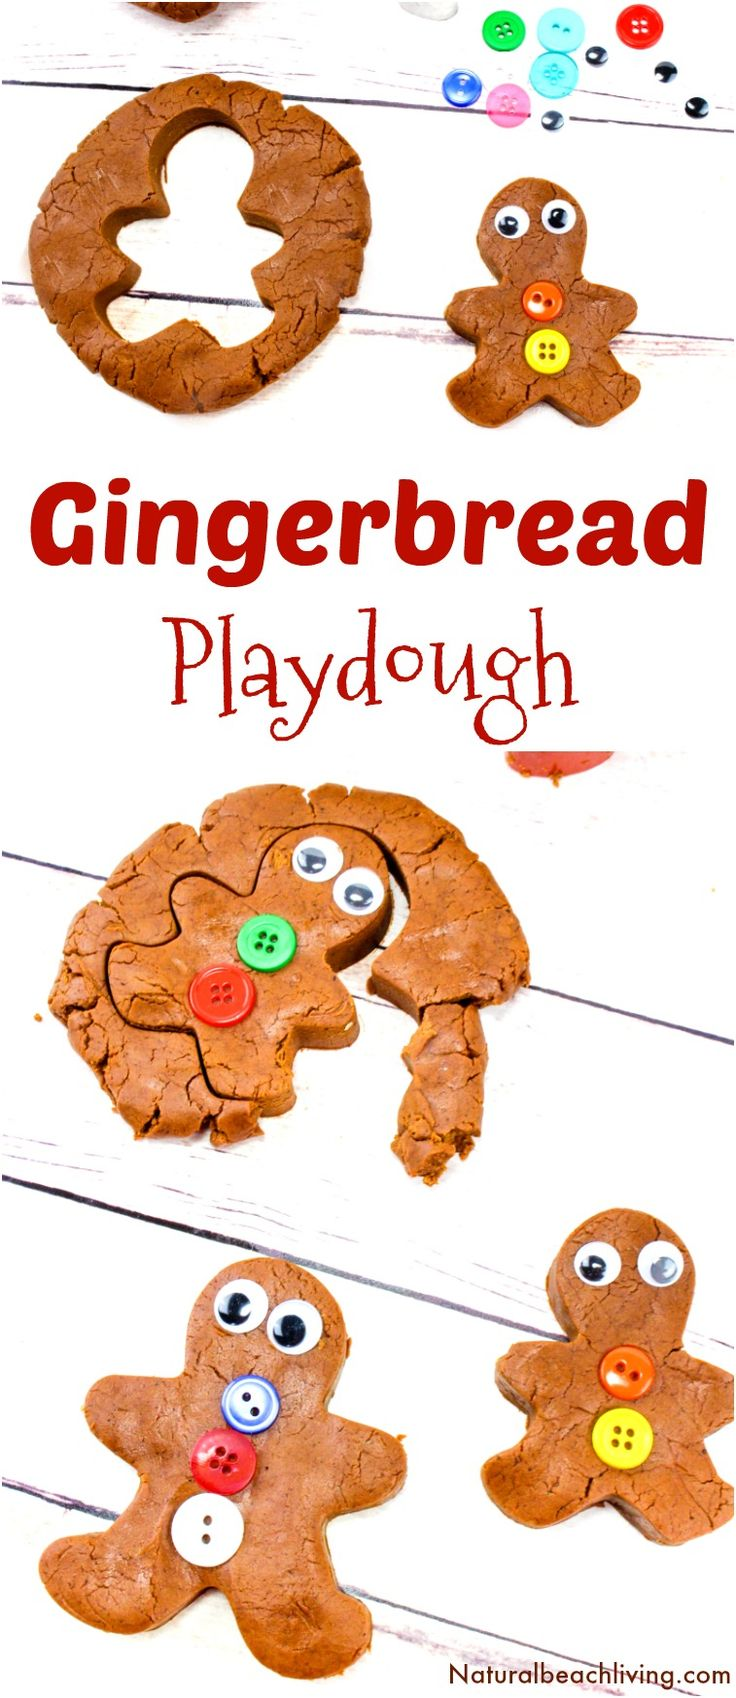 The Best Gingerbread Playdough Recipe, No-Cook Playdough, Gingerbread Playdough No Cream of Tartar, Homemade Playdough without cream of tartar, Scented Playdough, Edible Playdough recipe, Gingerbread Man Playdough, Winter Sensory Play #playdough #homemade